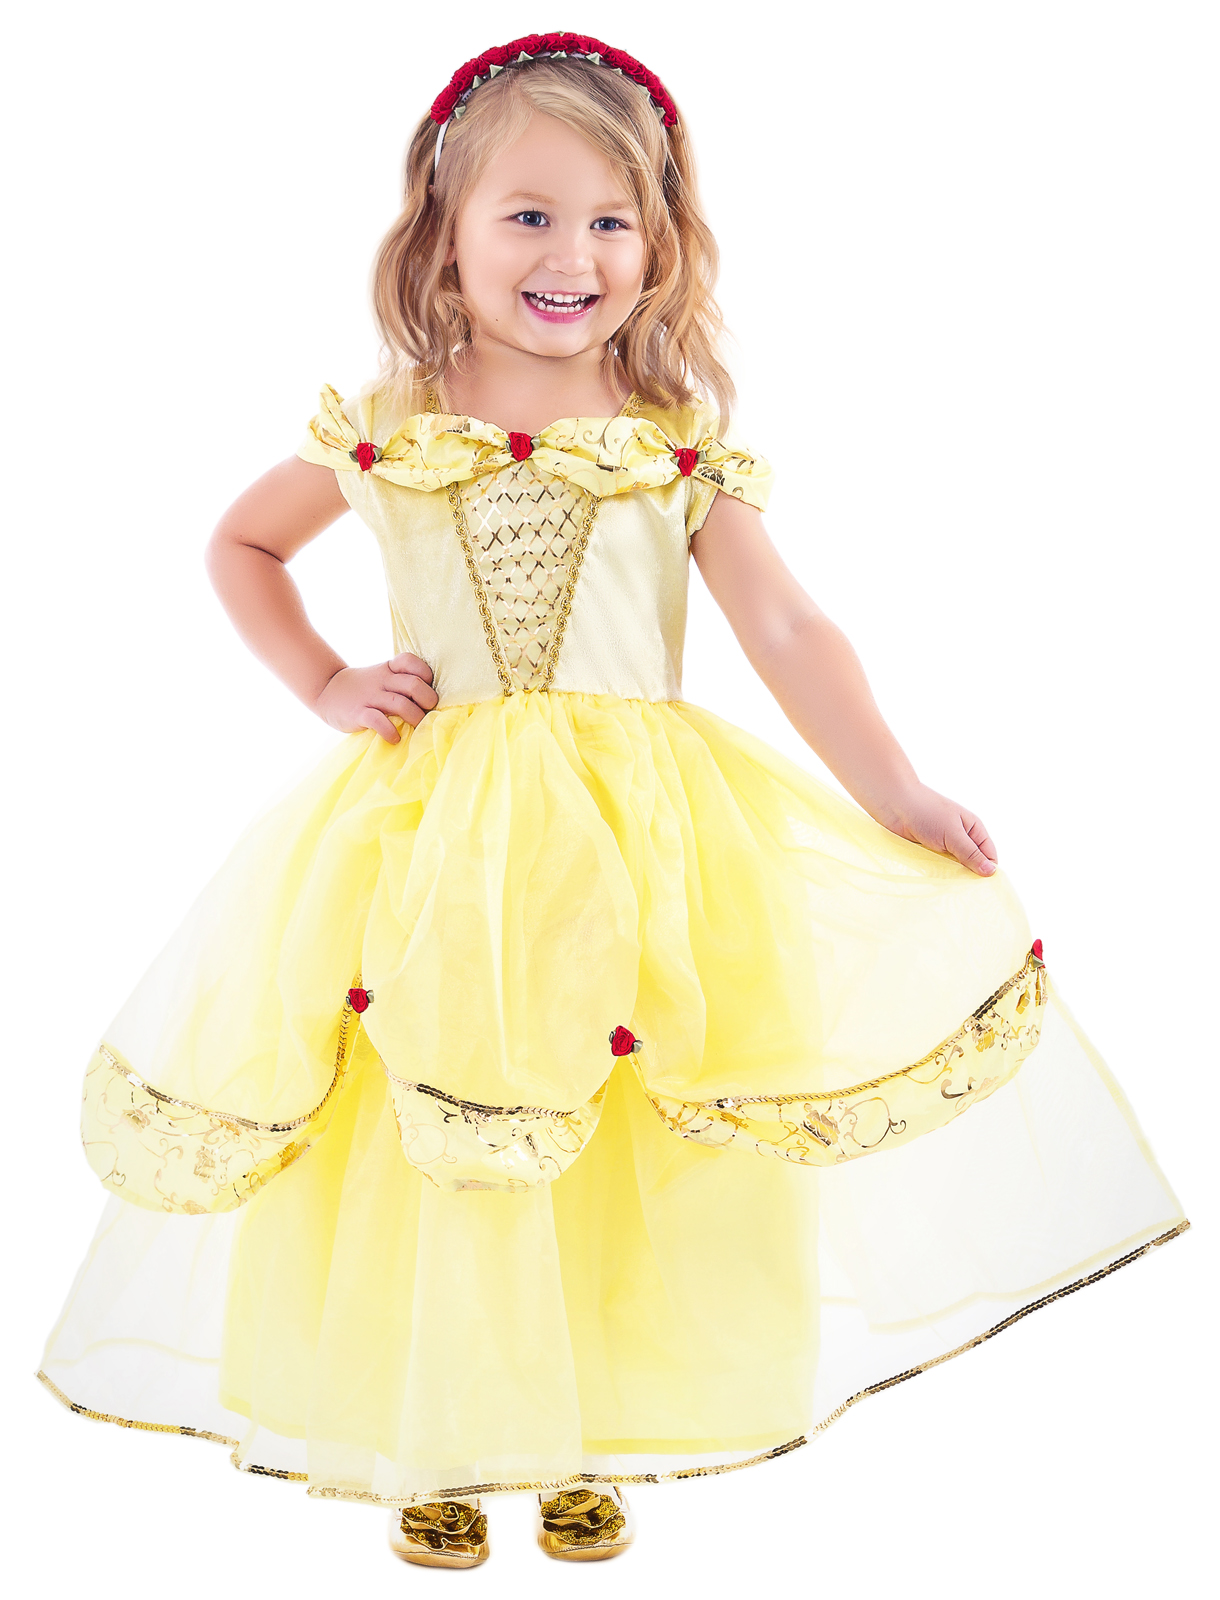 Looks - Dress Princess up clothes video